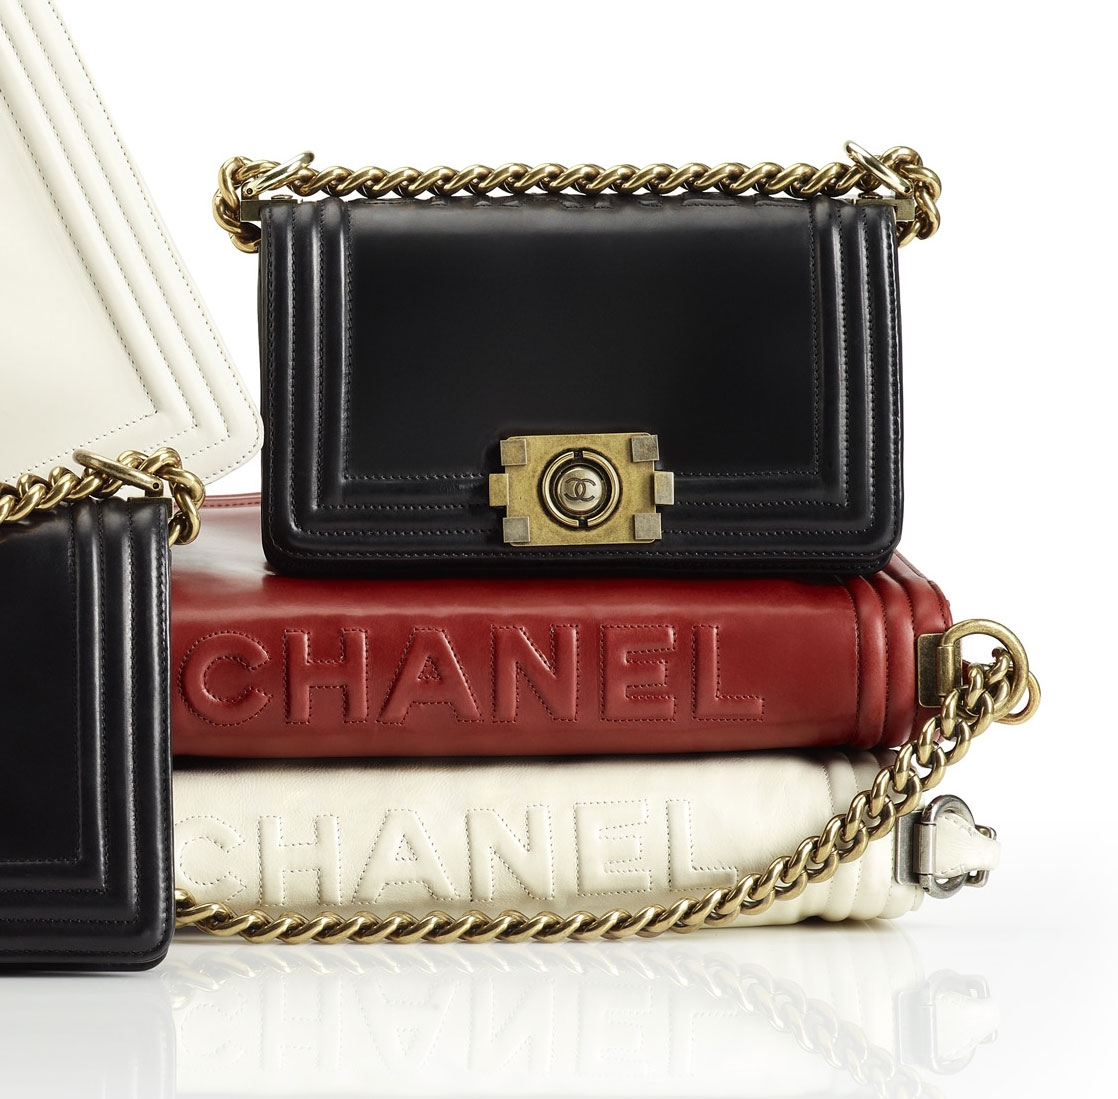 5779d22417d1 chanel 1118 replica outlet buy chanel 28600 handbags on sale